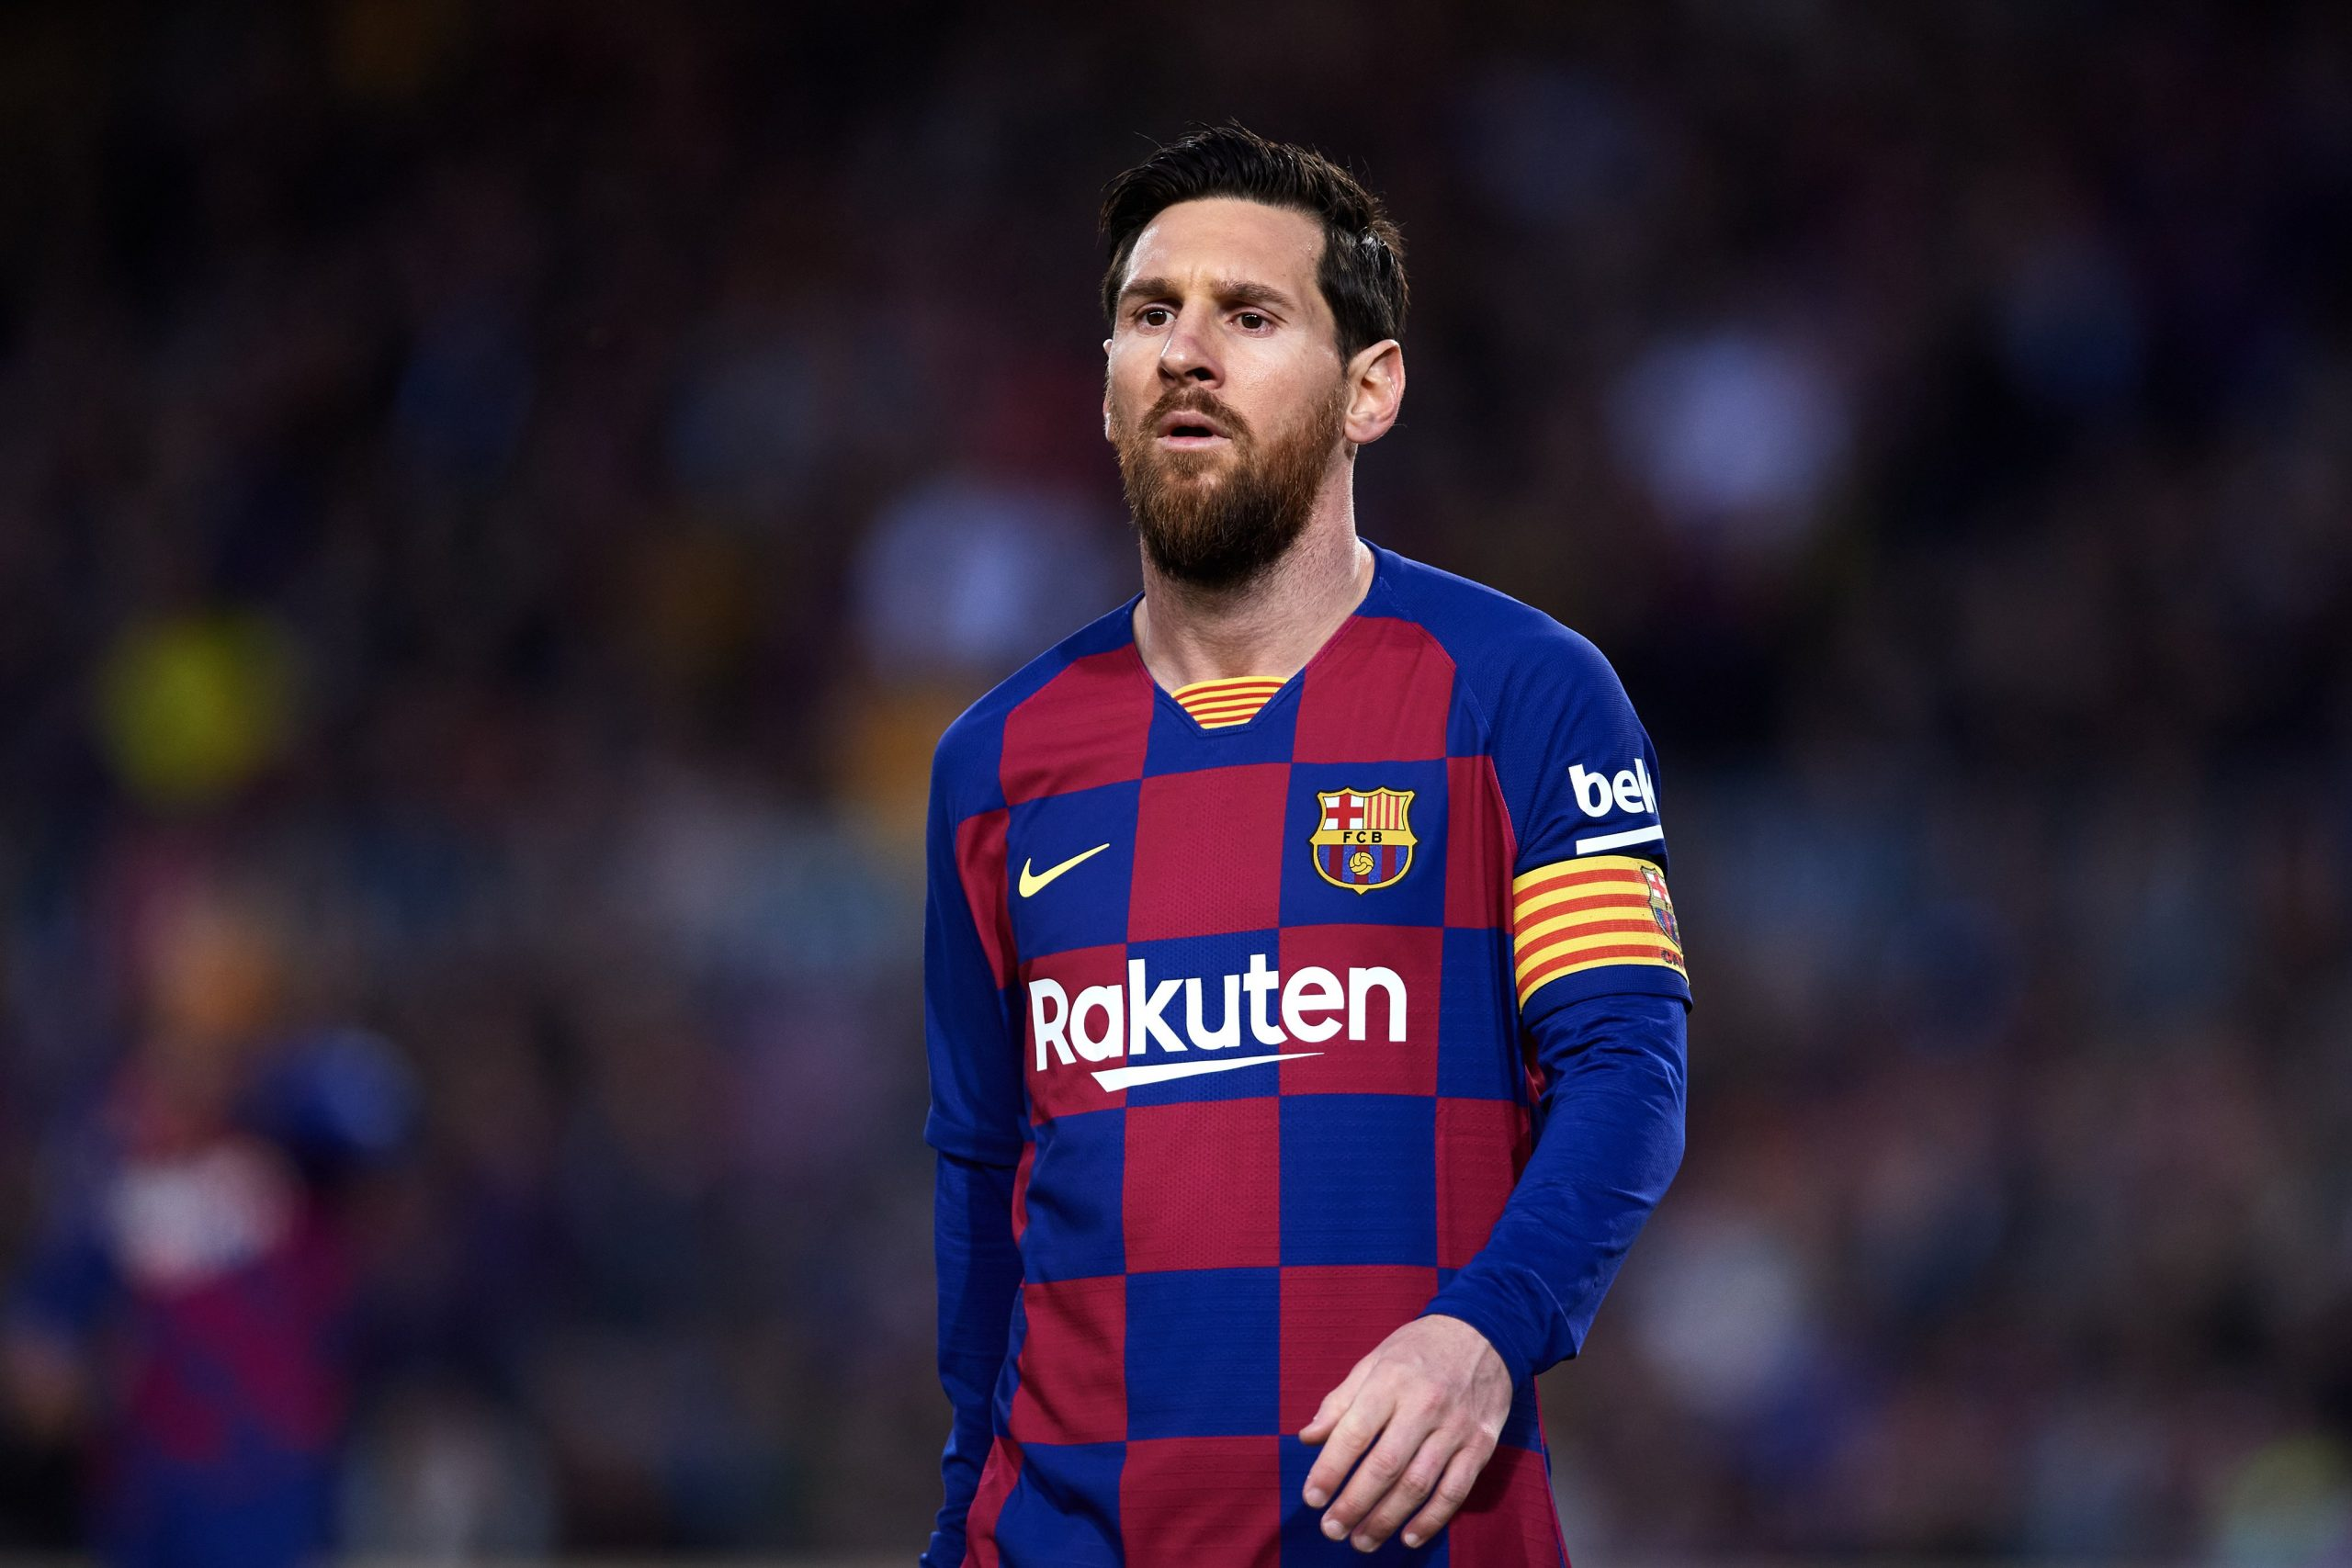 Messi To Extend Stay At Barcelona After Bartomeu Resignation